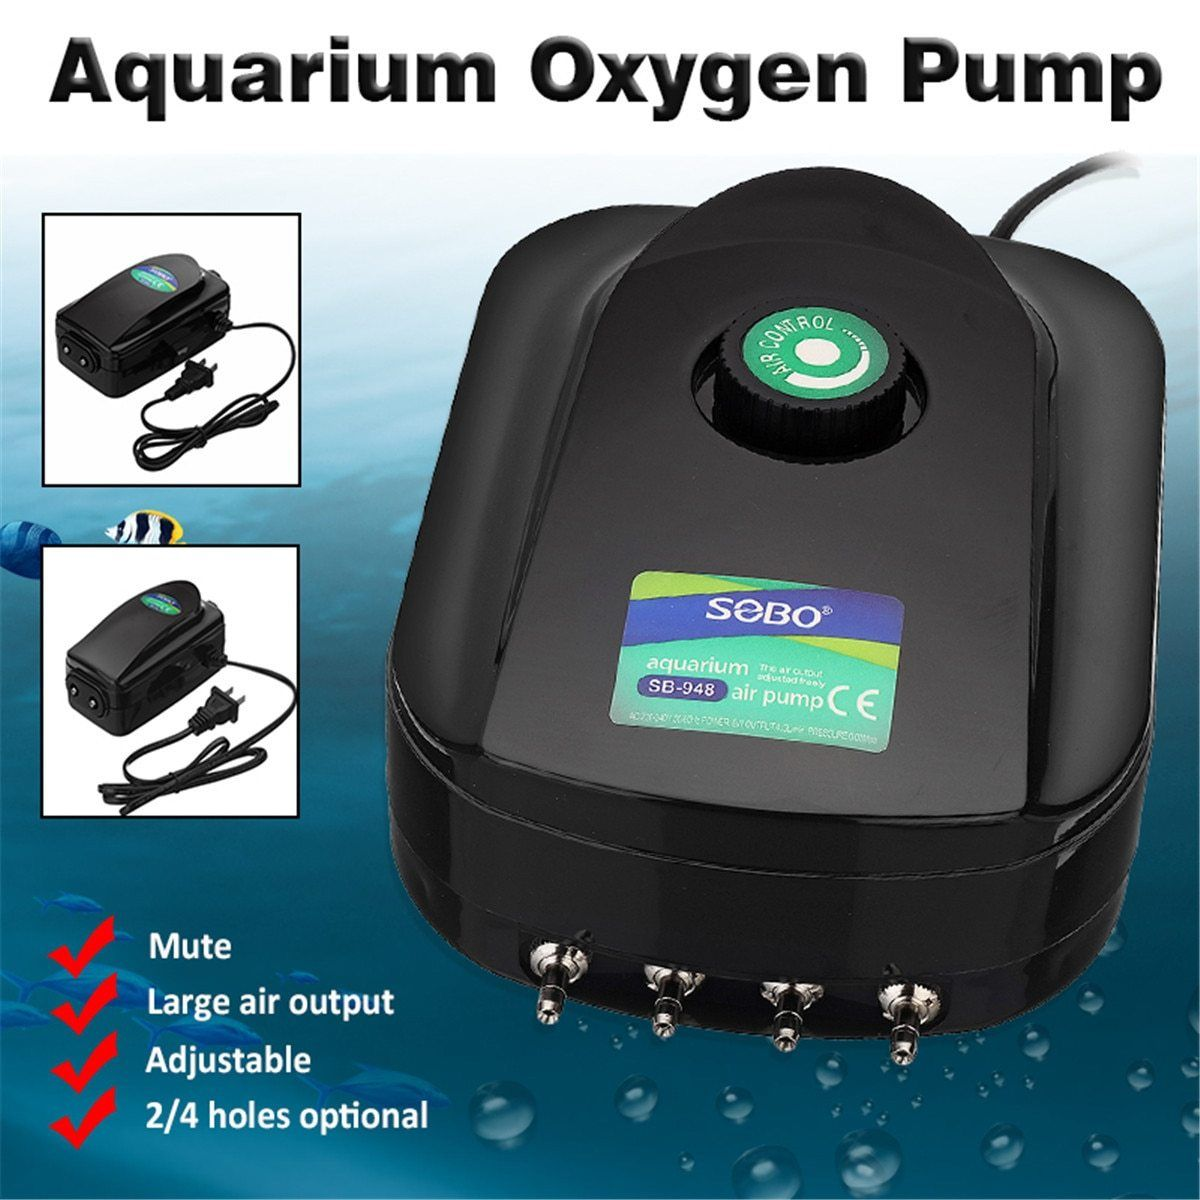 UltraSilent Aquarium Air Pump Adjustable Large Air Output